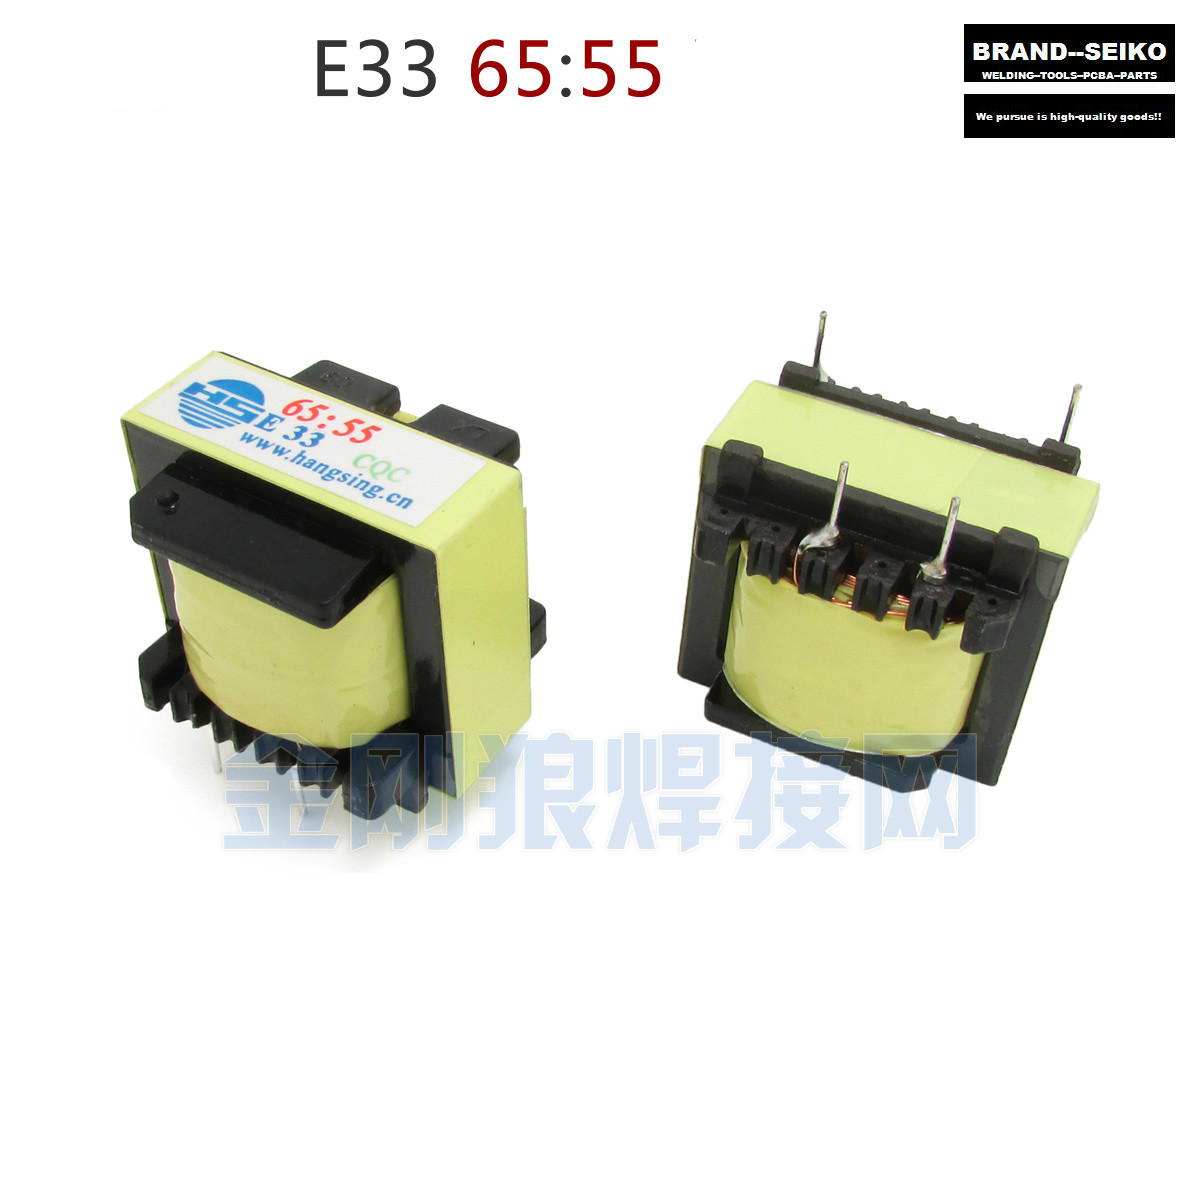 E33 65:55 2pcs/lot Inverter Argon Arc Welding Machine High Voltage Ignition Plate Commonly Used E<br>